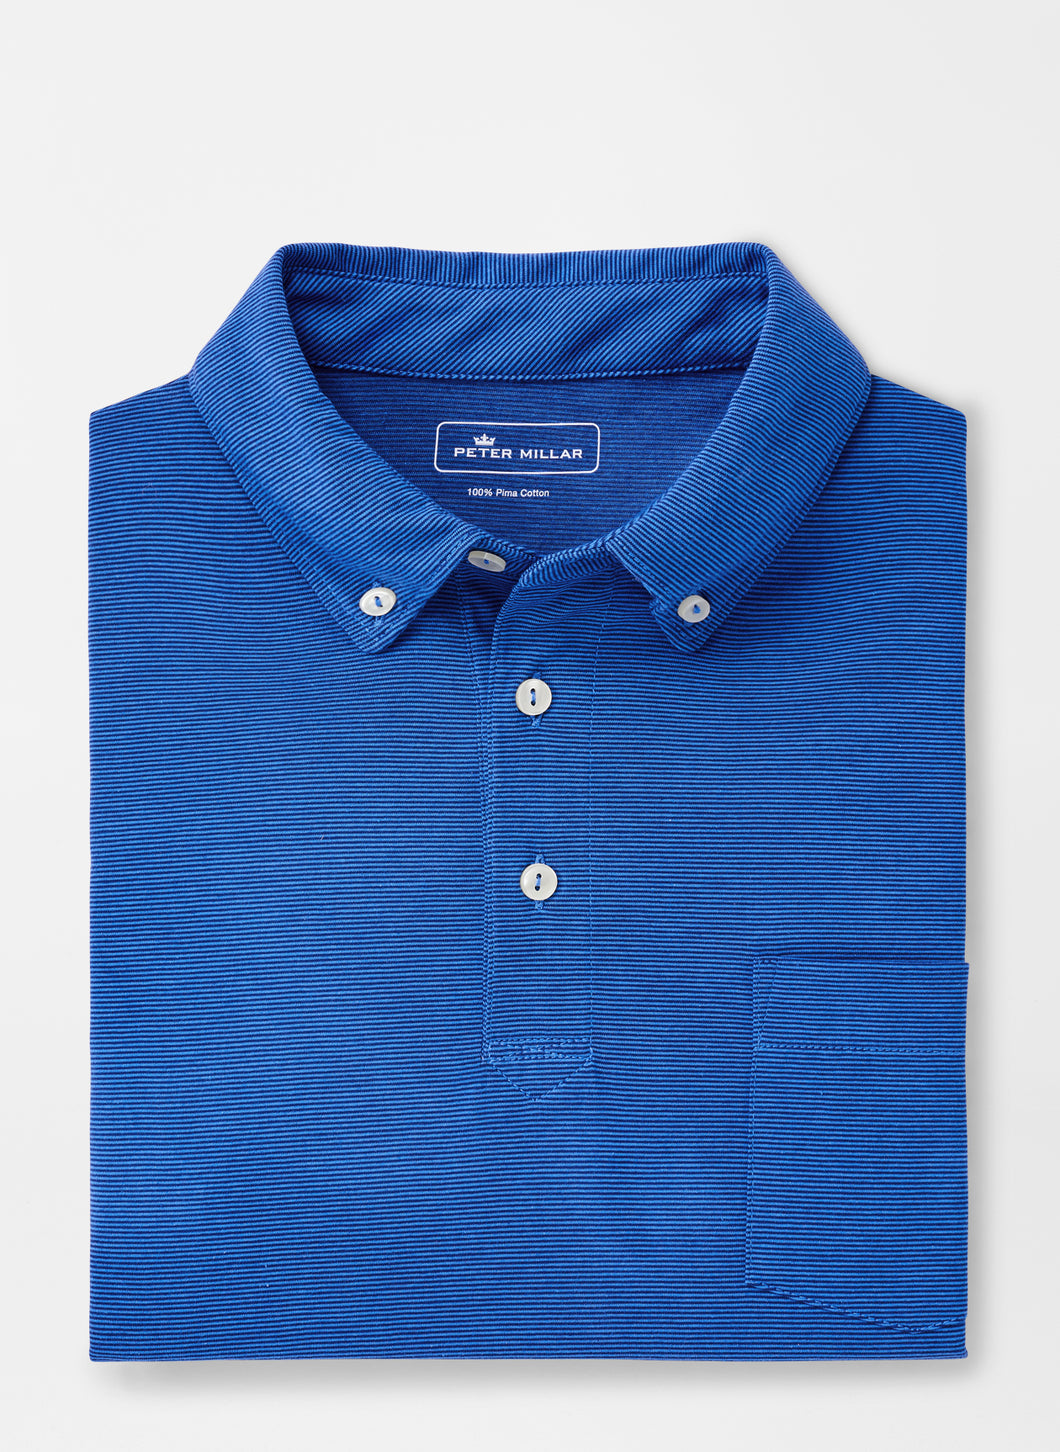 Peter Millar Shark Island Aqua Cotton Polo - Lazuline